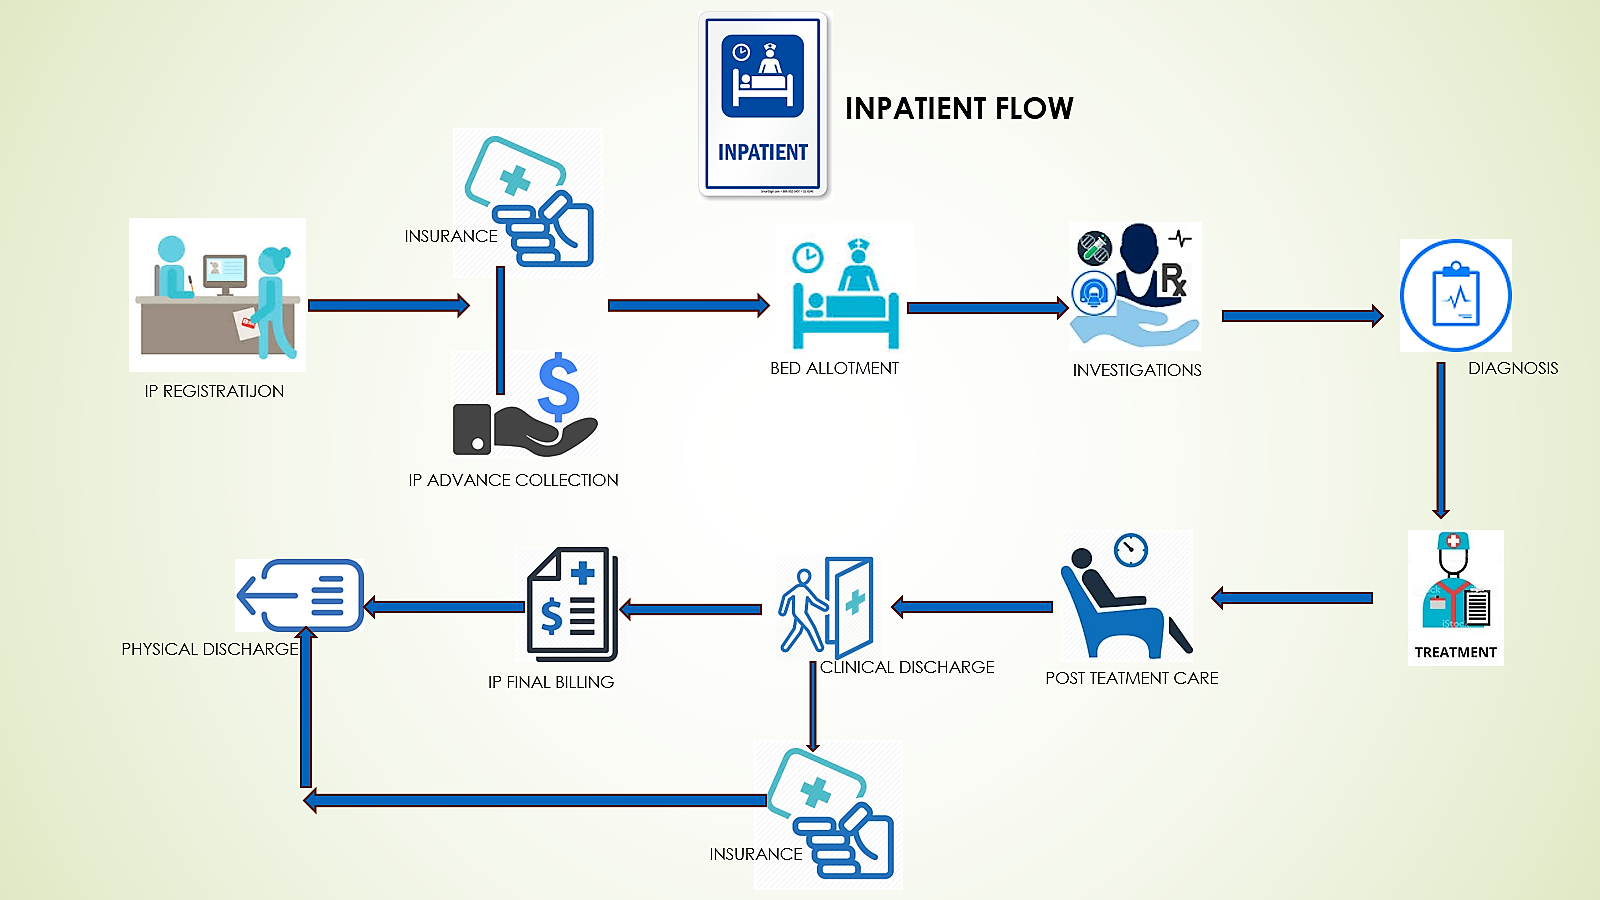 Depiction on InPatient Workflow in HMS